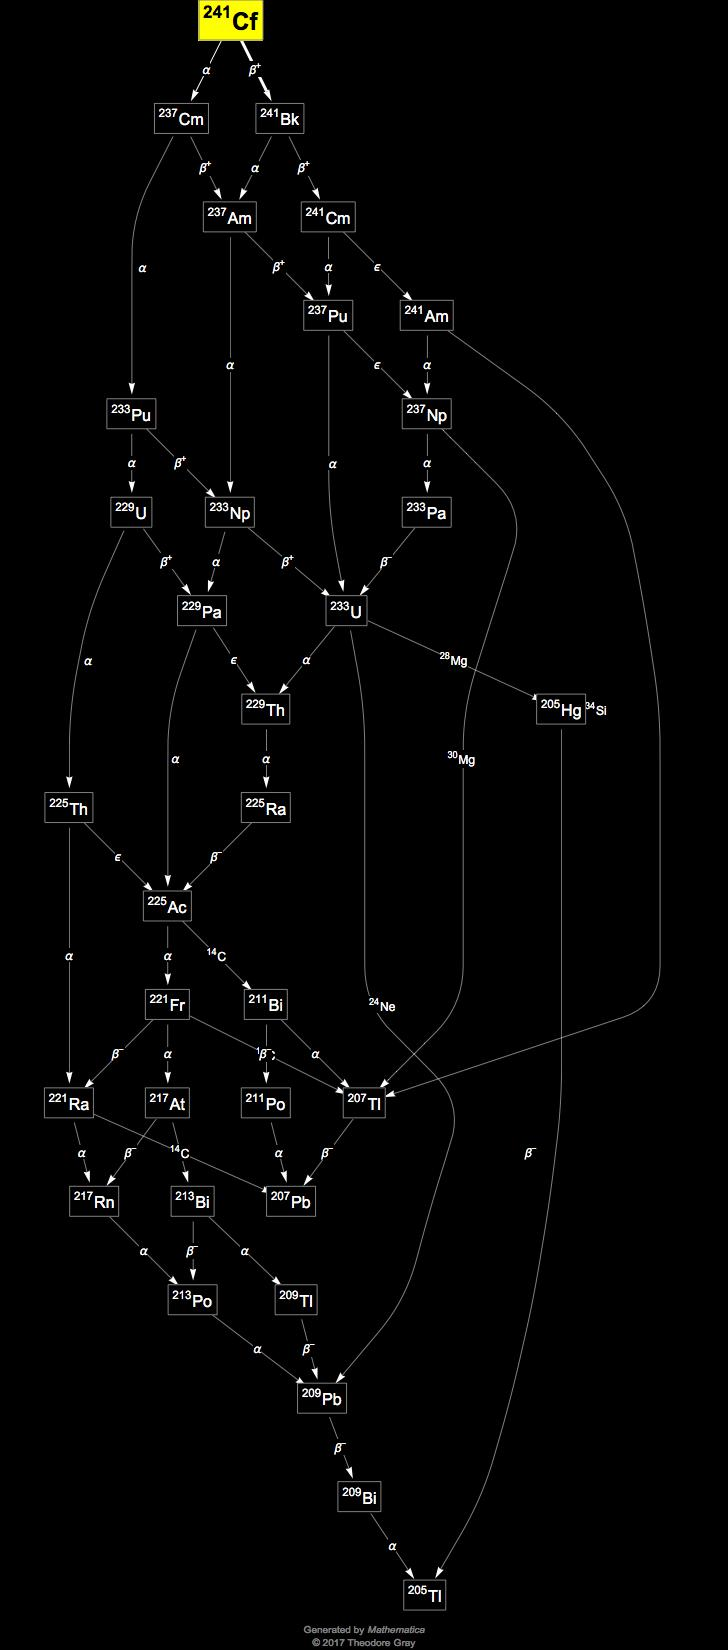 Isotope data for californium 241 in the periodic table decay chain image generated by mathematicas graphplot and isotopedata functions from wolfram research inc gamestrikefo Images